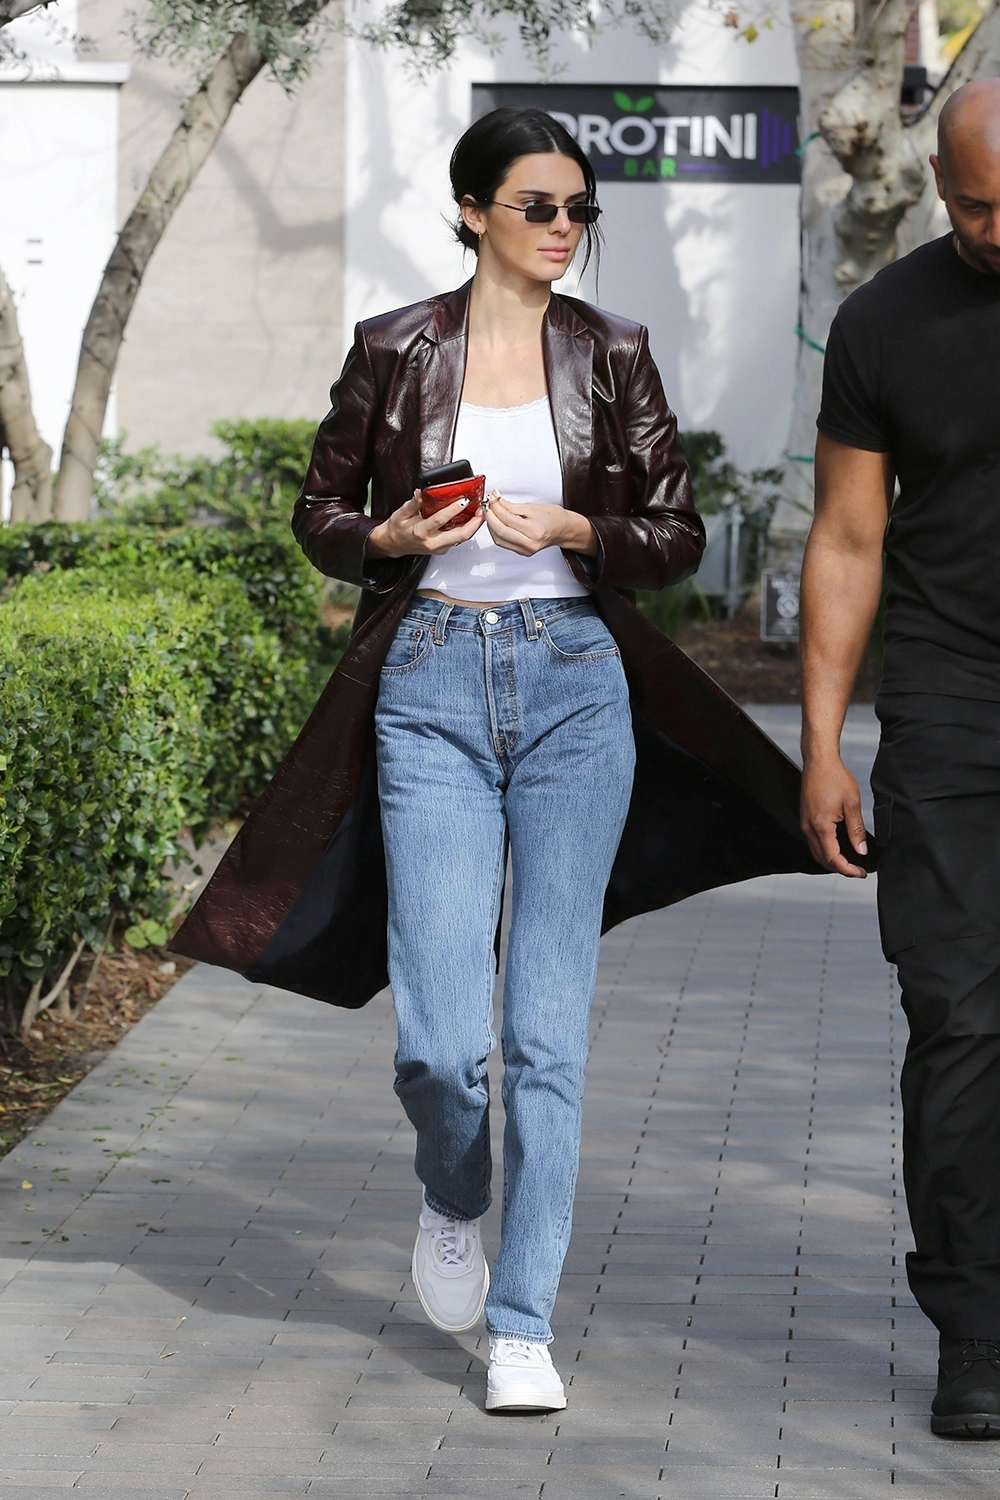 Leather Jacket Trend Pics Kendall Jenner Outfits Kendall Jenner Street Style Kendall Style [ 1500 x 1000 Pixel ]